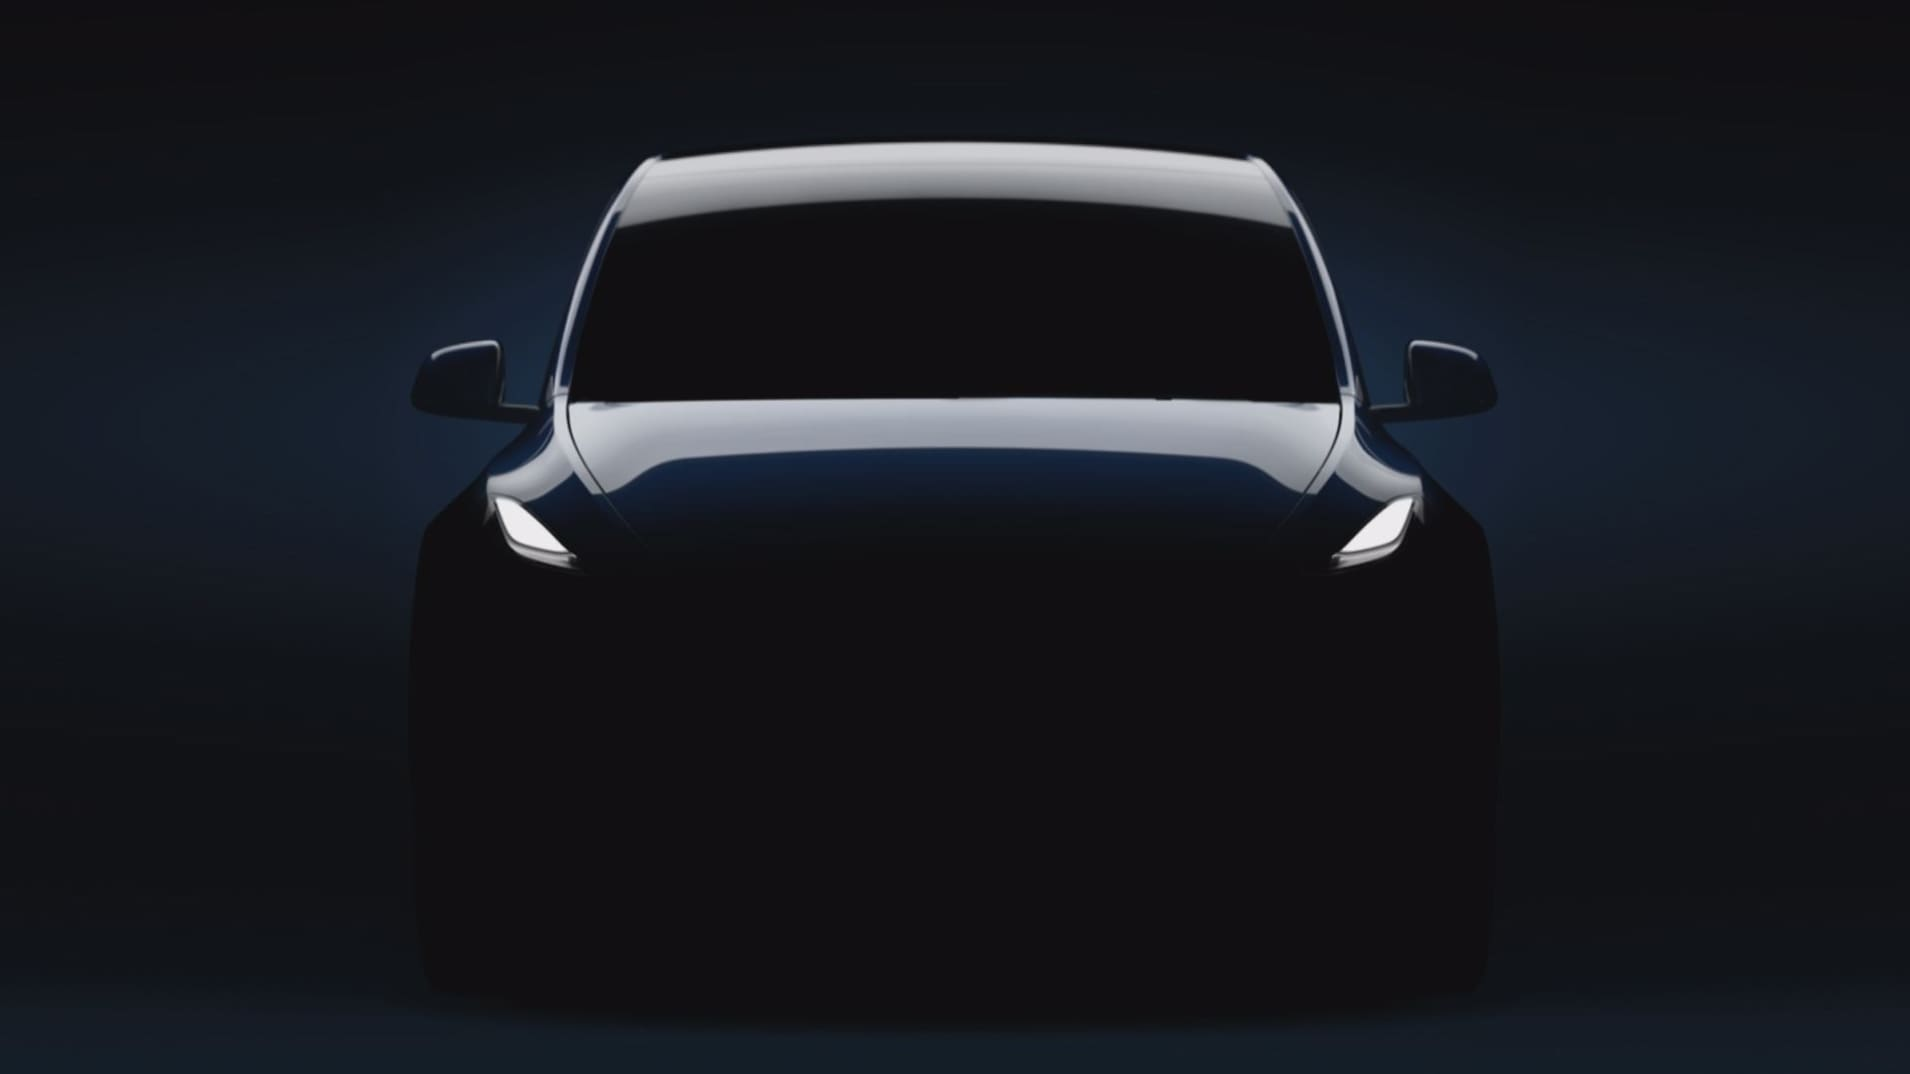 Tesla shares tumble after company unveils 'underwhelming' Model Y